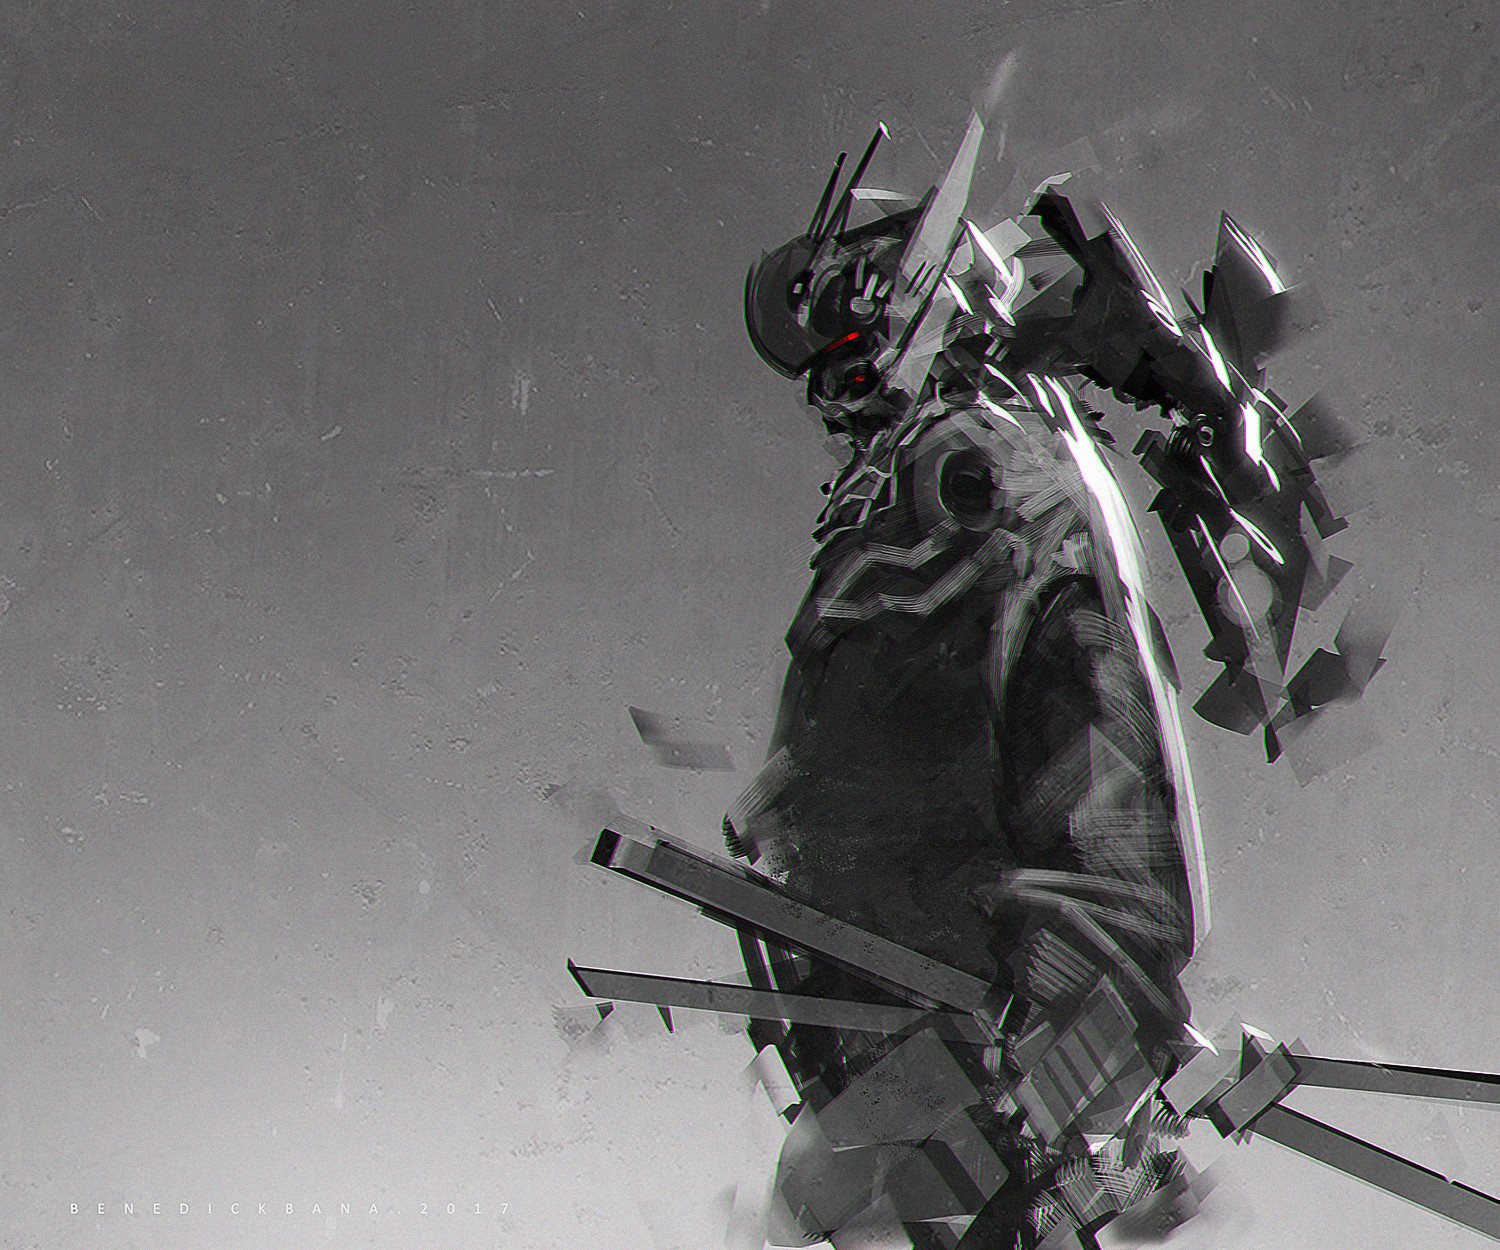 Benedick bana project t lores